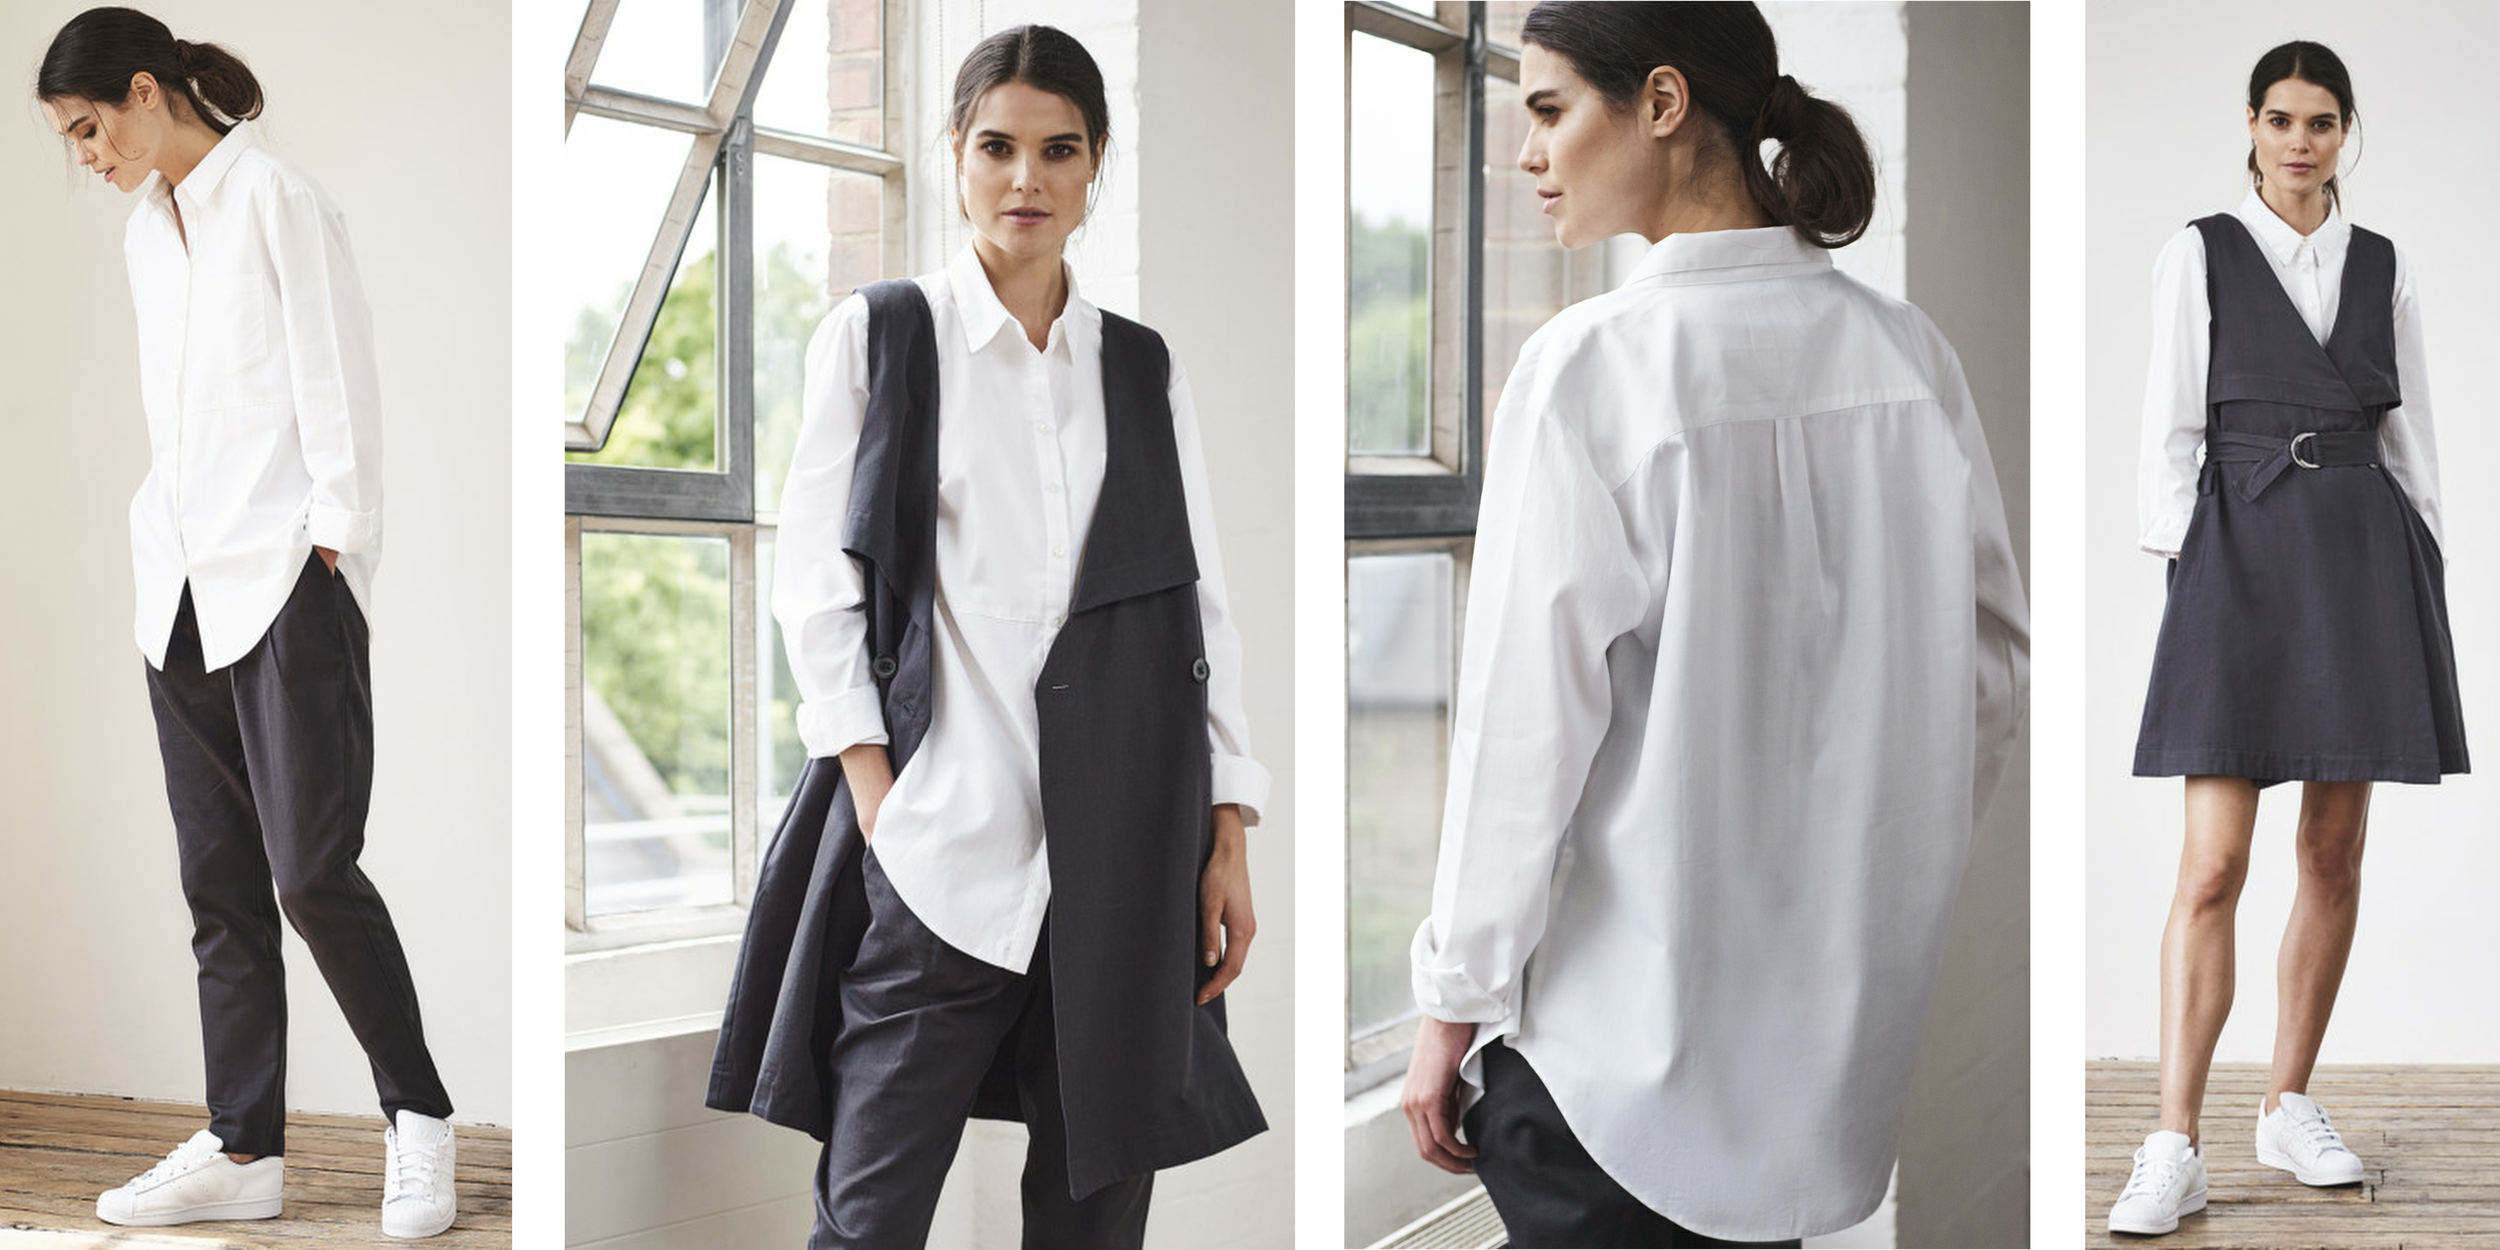 the hoxton shirt  P.I.C. STYLE £130  BUY HERE